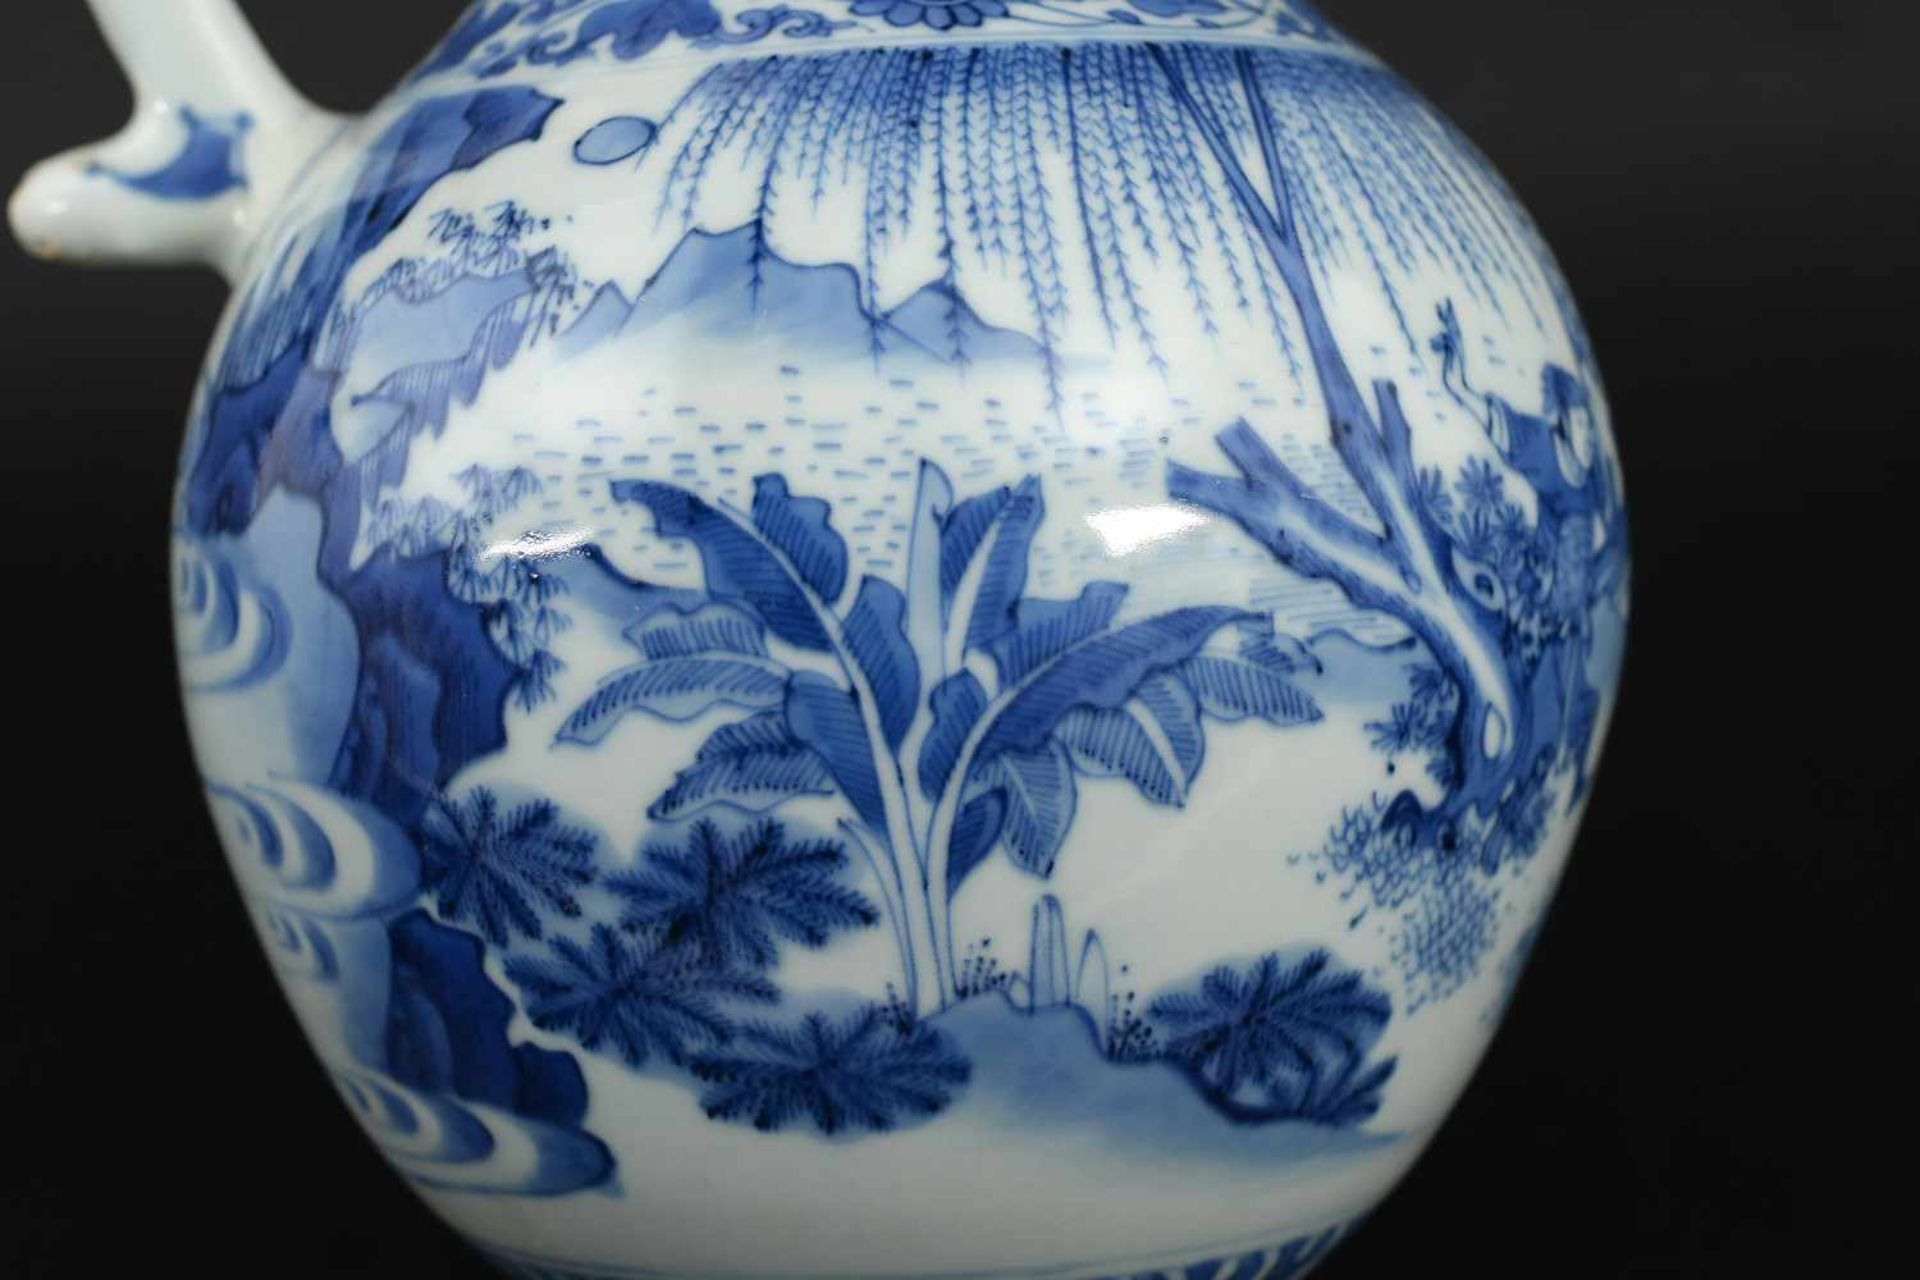 A blue and white porcelain jug, decorated with figures, a river landscape and flowers. Unmarked. - Bild 5 aus 9